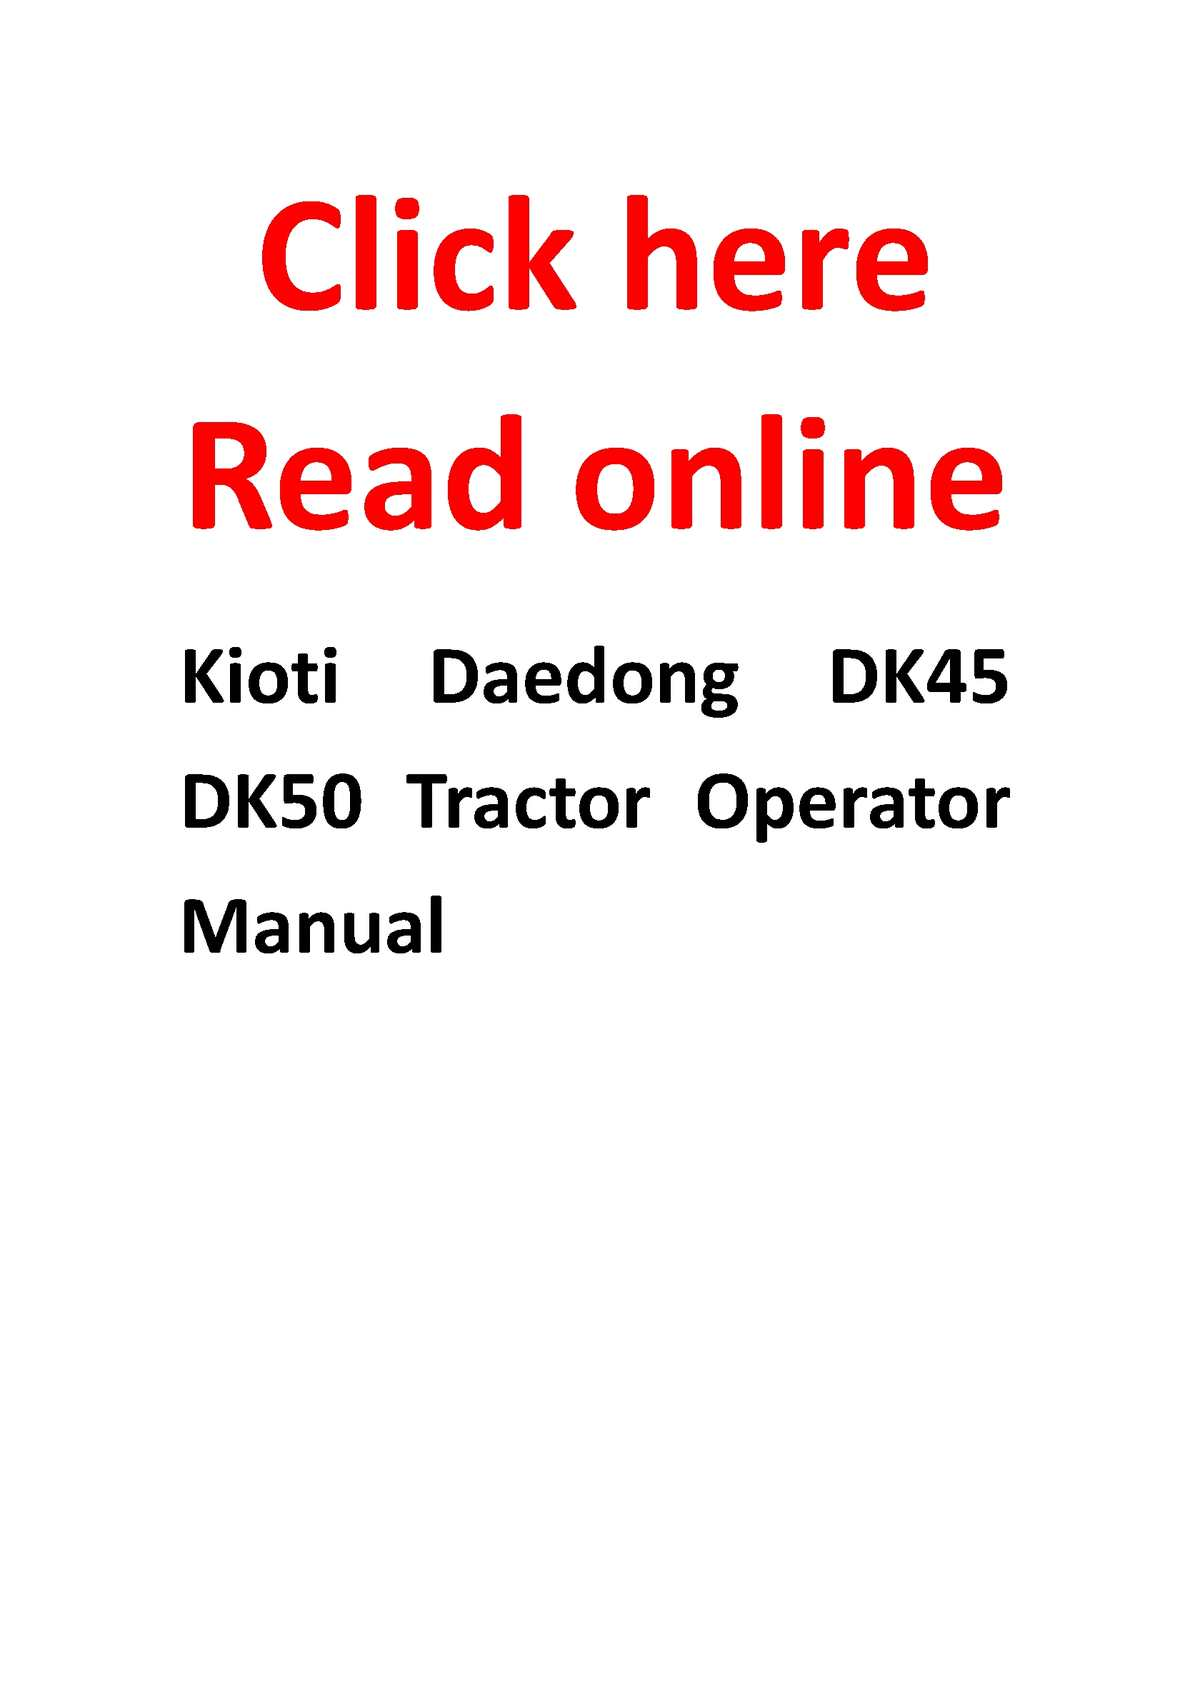 p1 calam�o kioti daedong dk45 dk50 tractor operator manual DK 45 Kioti Specs at panicattacktreatment.co